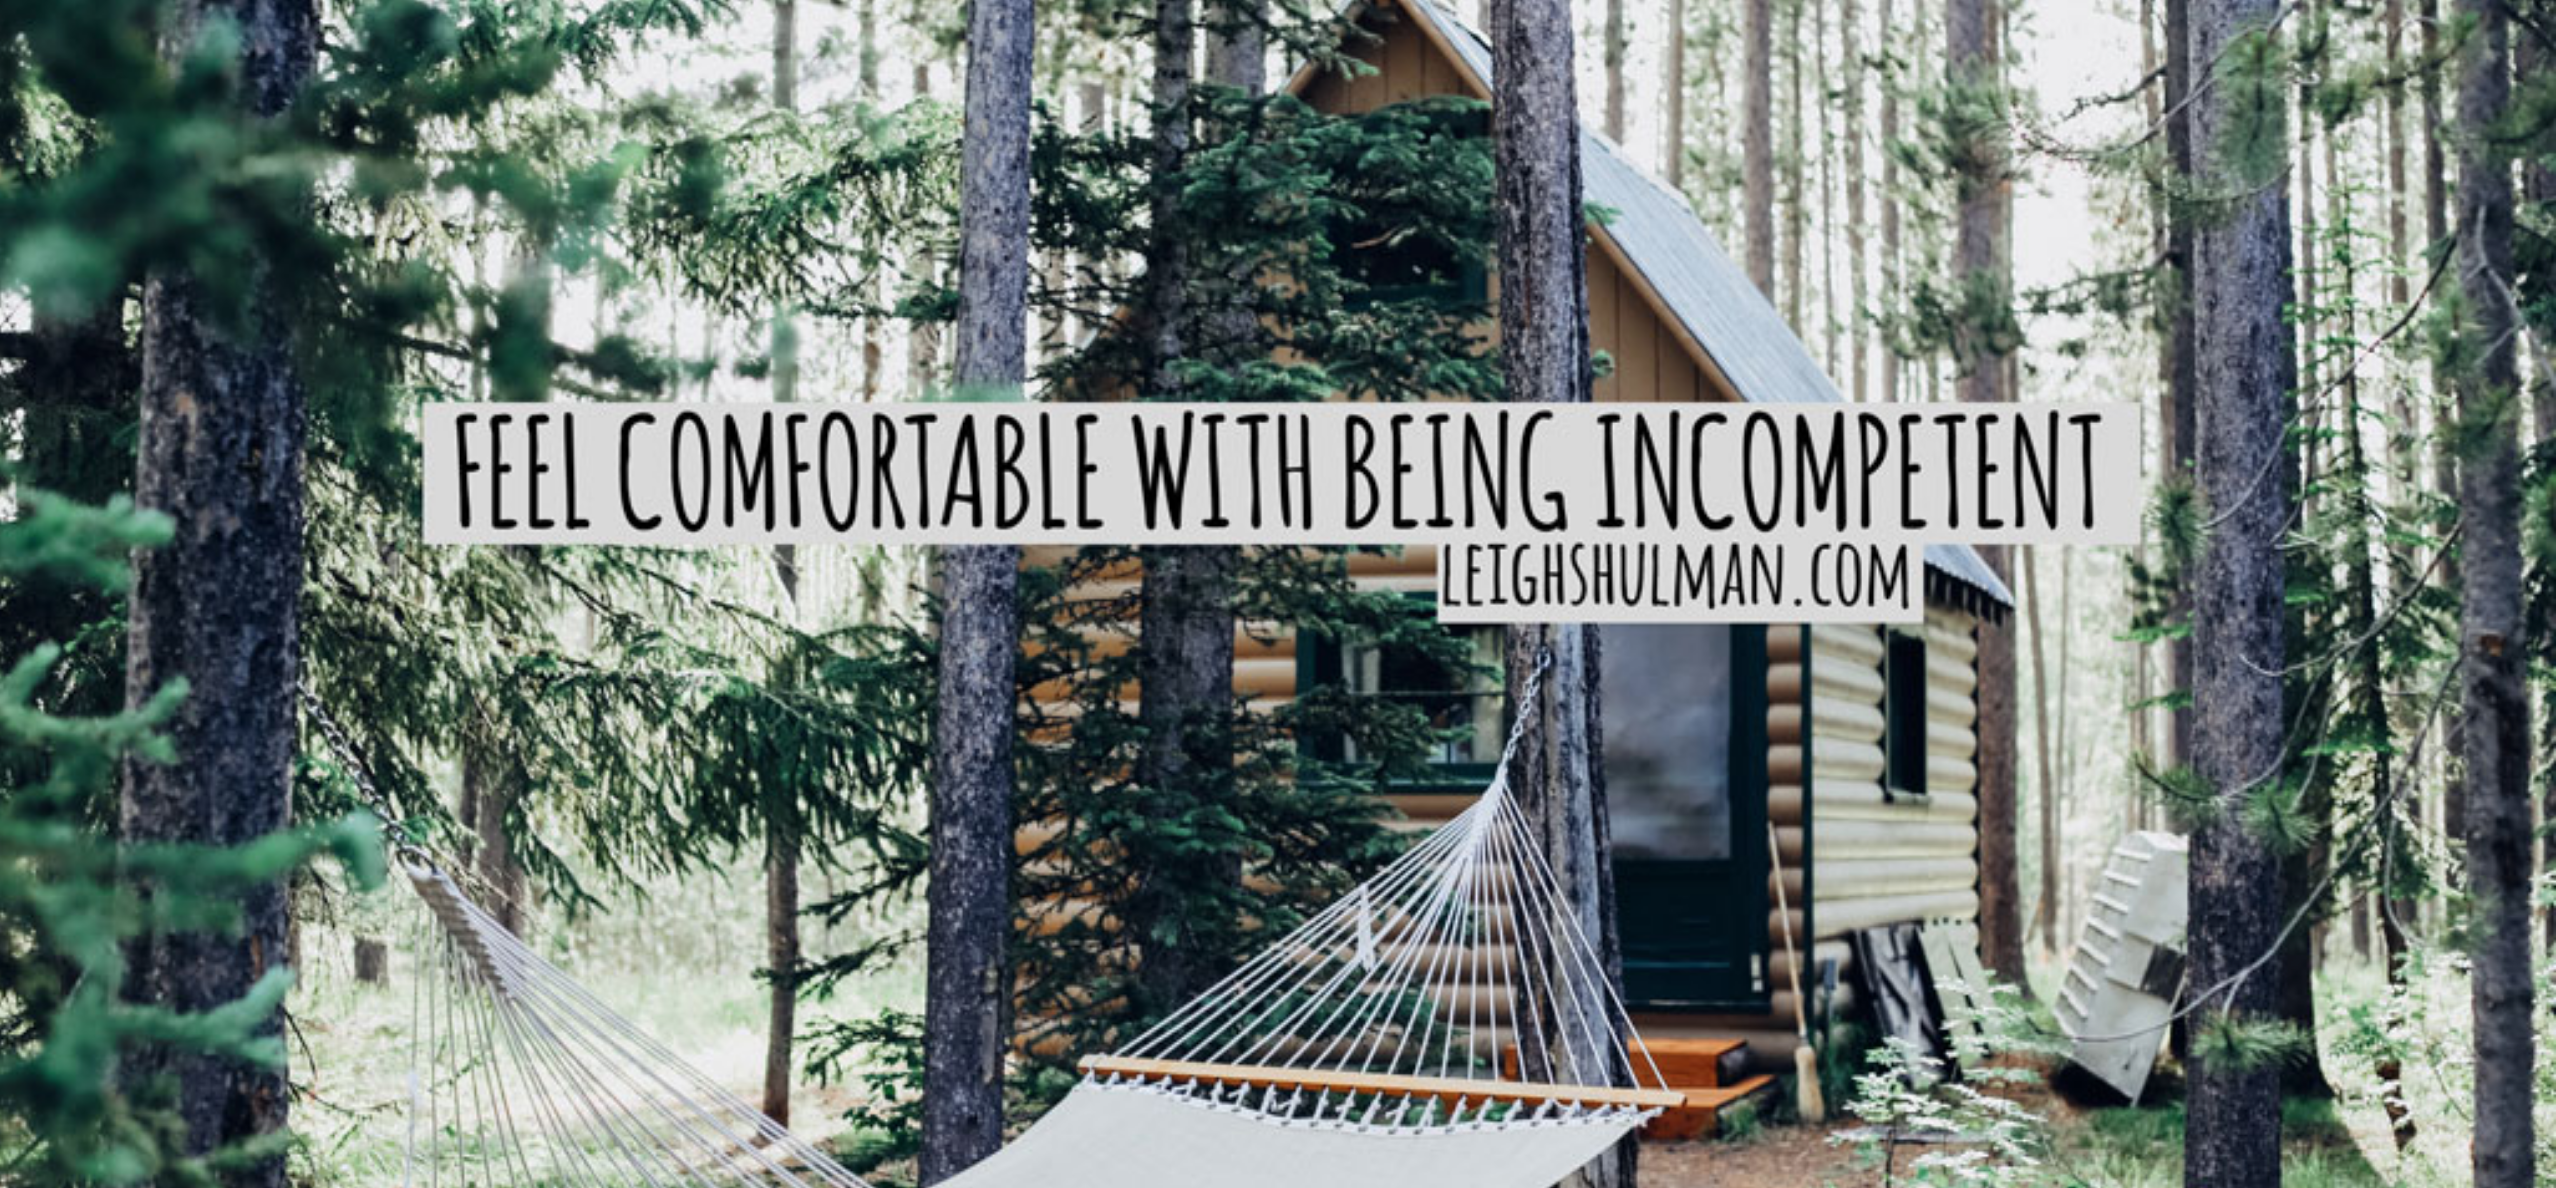 It's Time to Get Comfortable with Being Incompetent